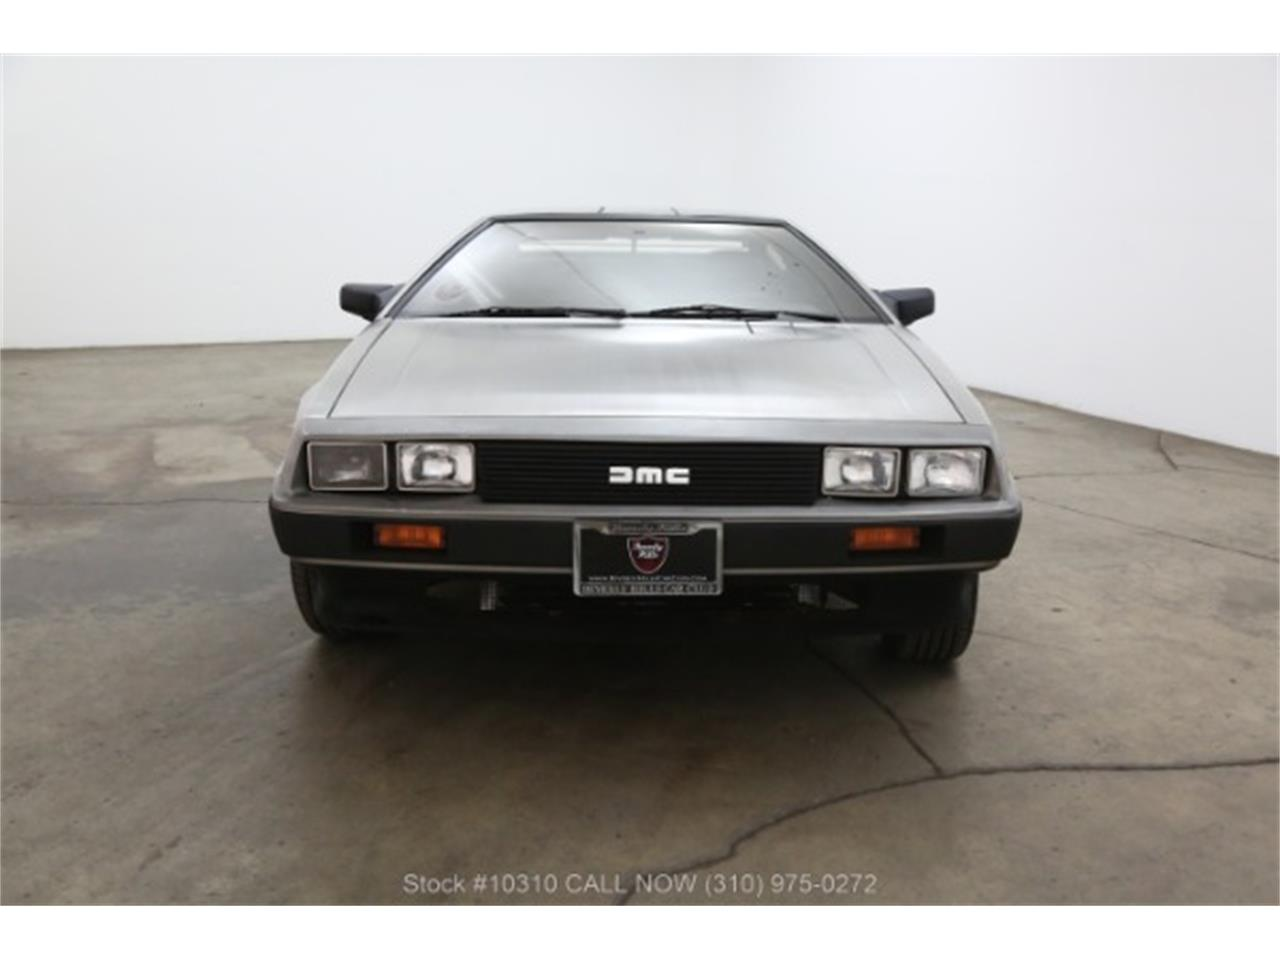 DeLorean DMC-12 Retour vers le future 1981 1981